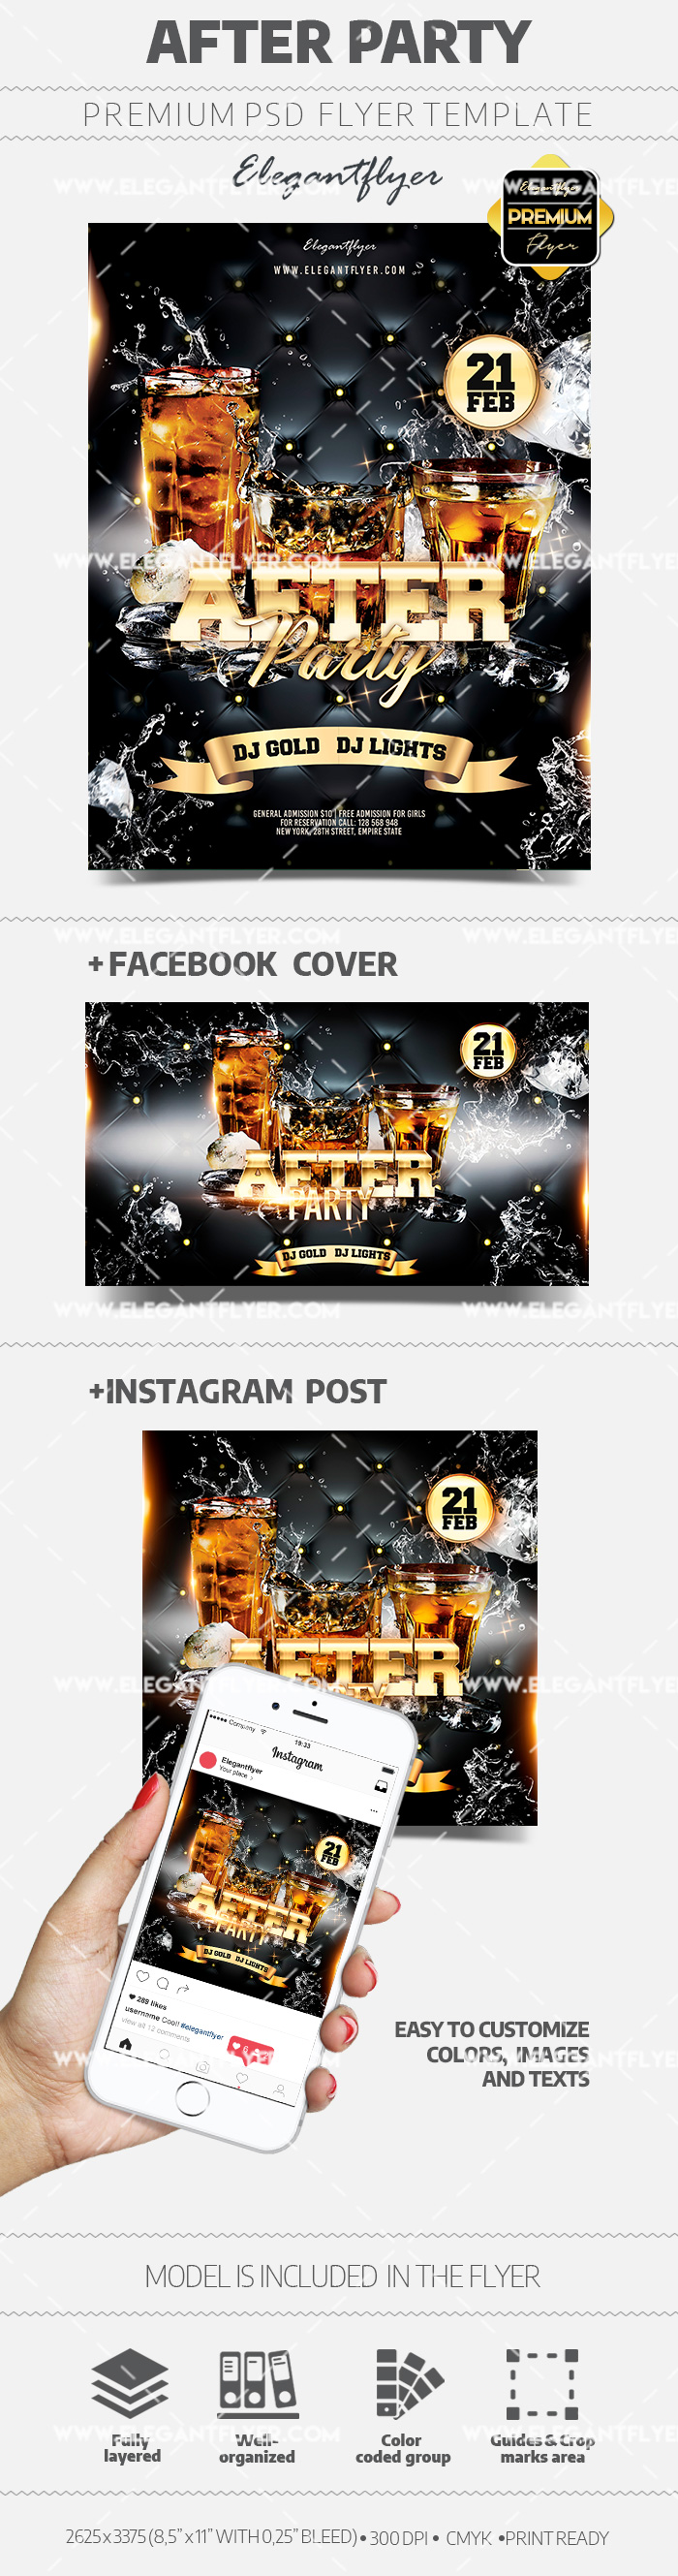 After Party – PSD Flyer Template + Instagram Post + Facebook Cover